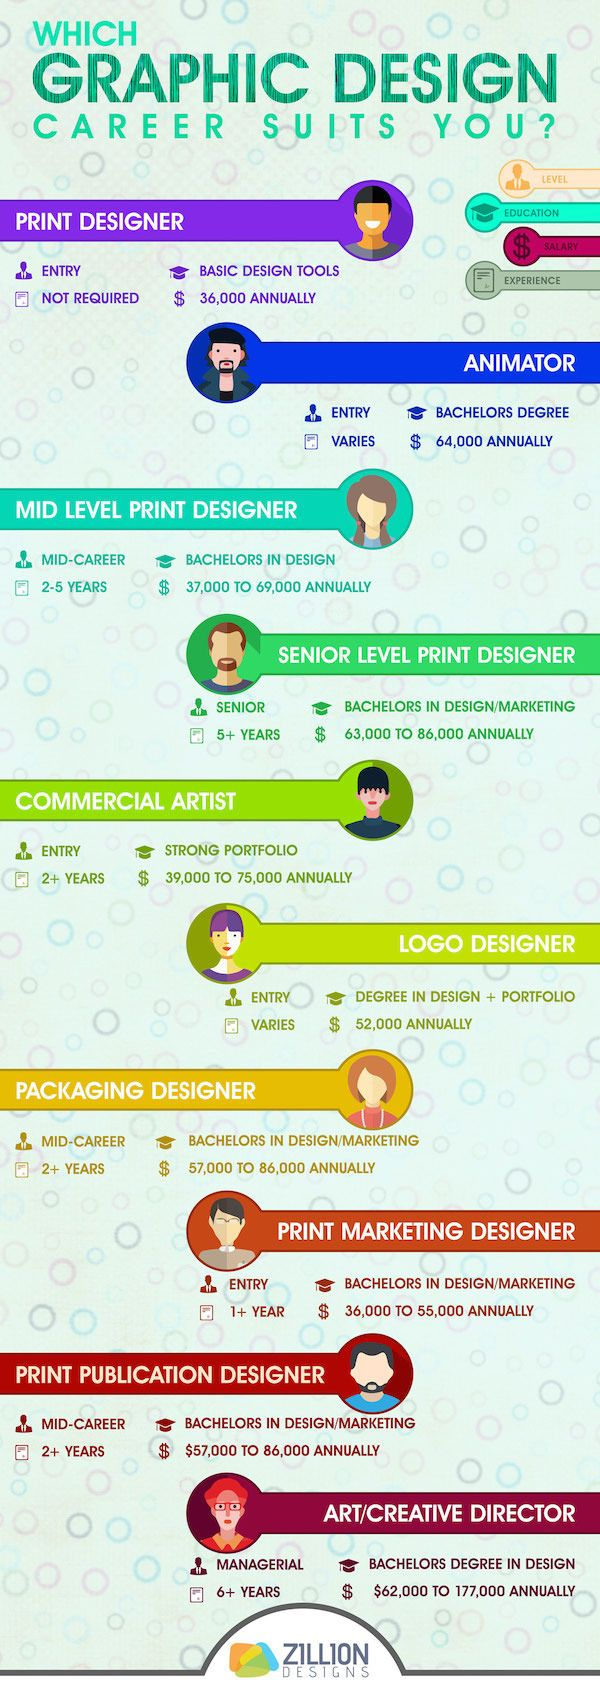 Which Graphic Design Career Suits You